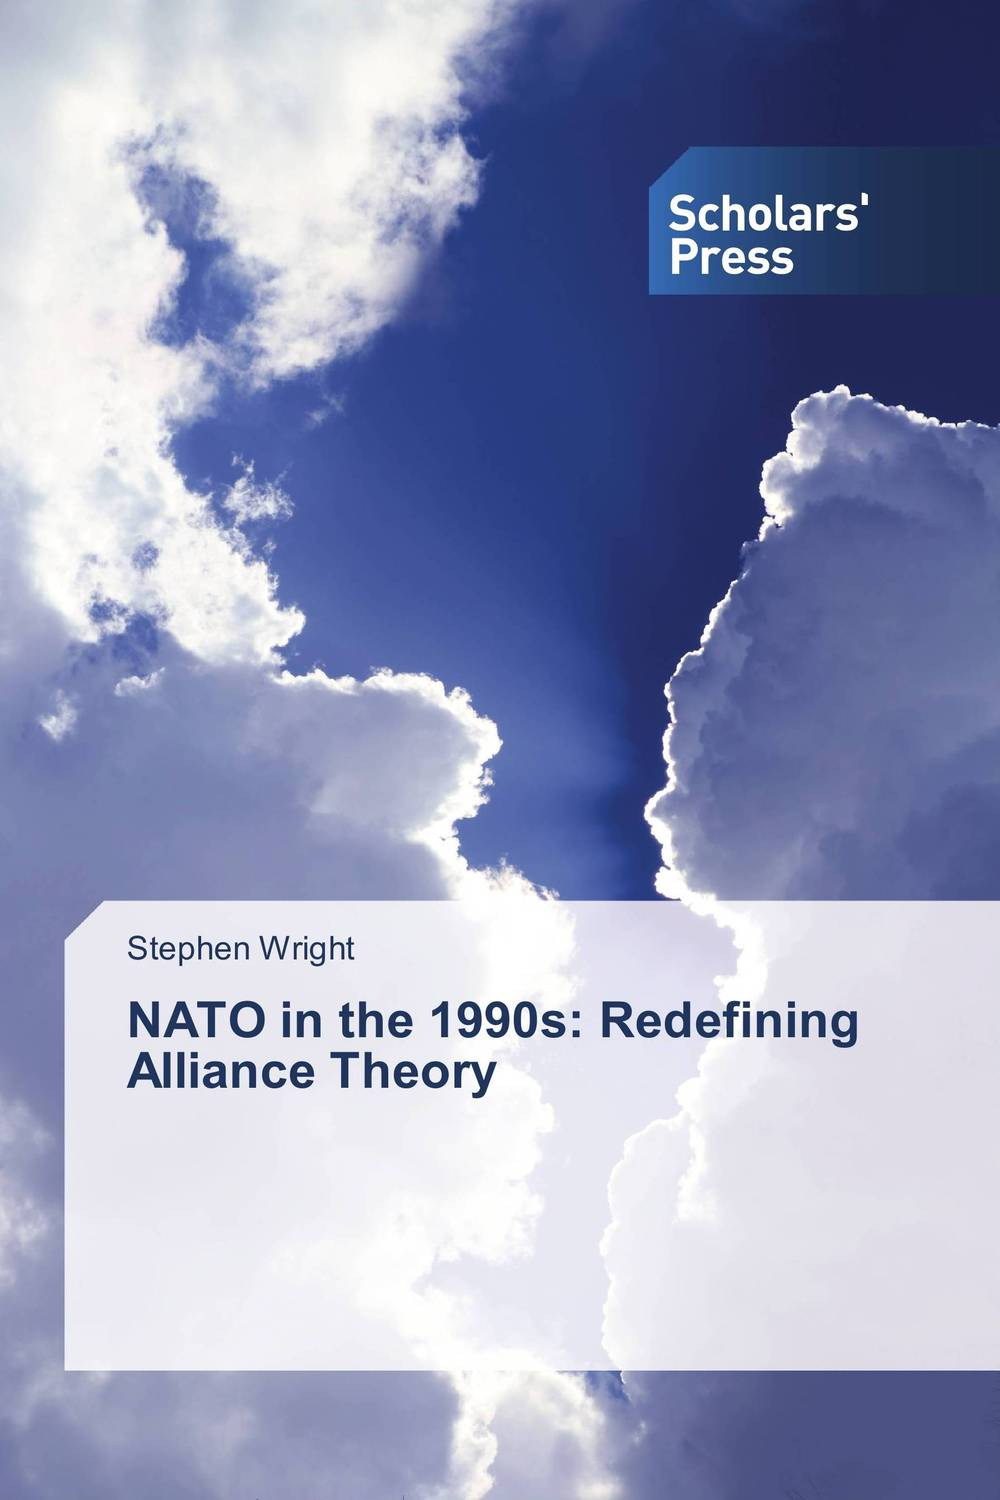 NATO in the 1990s: Redefining Alliance Theory